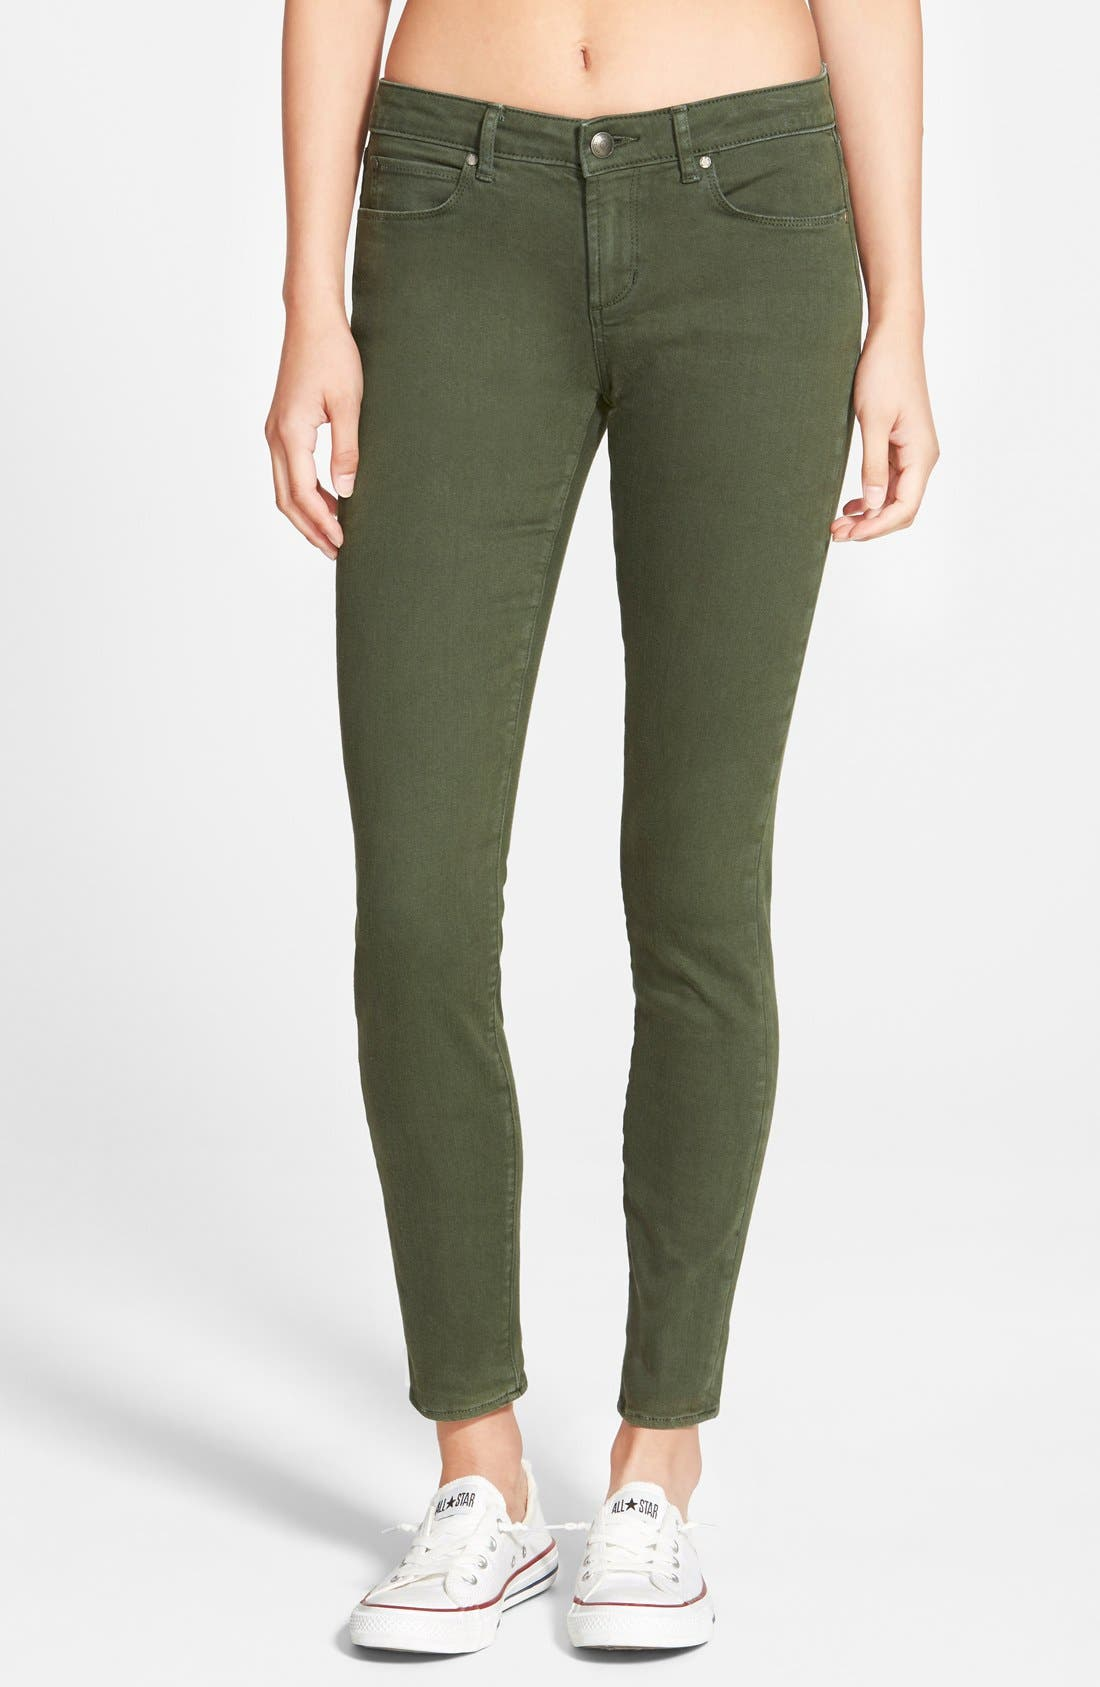 Main Image - Articles of Society 'Cindy' Overdye Skinny Jeans (Olive)